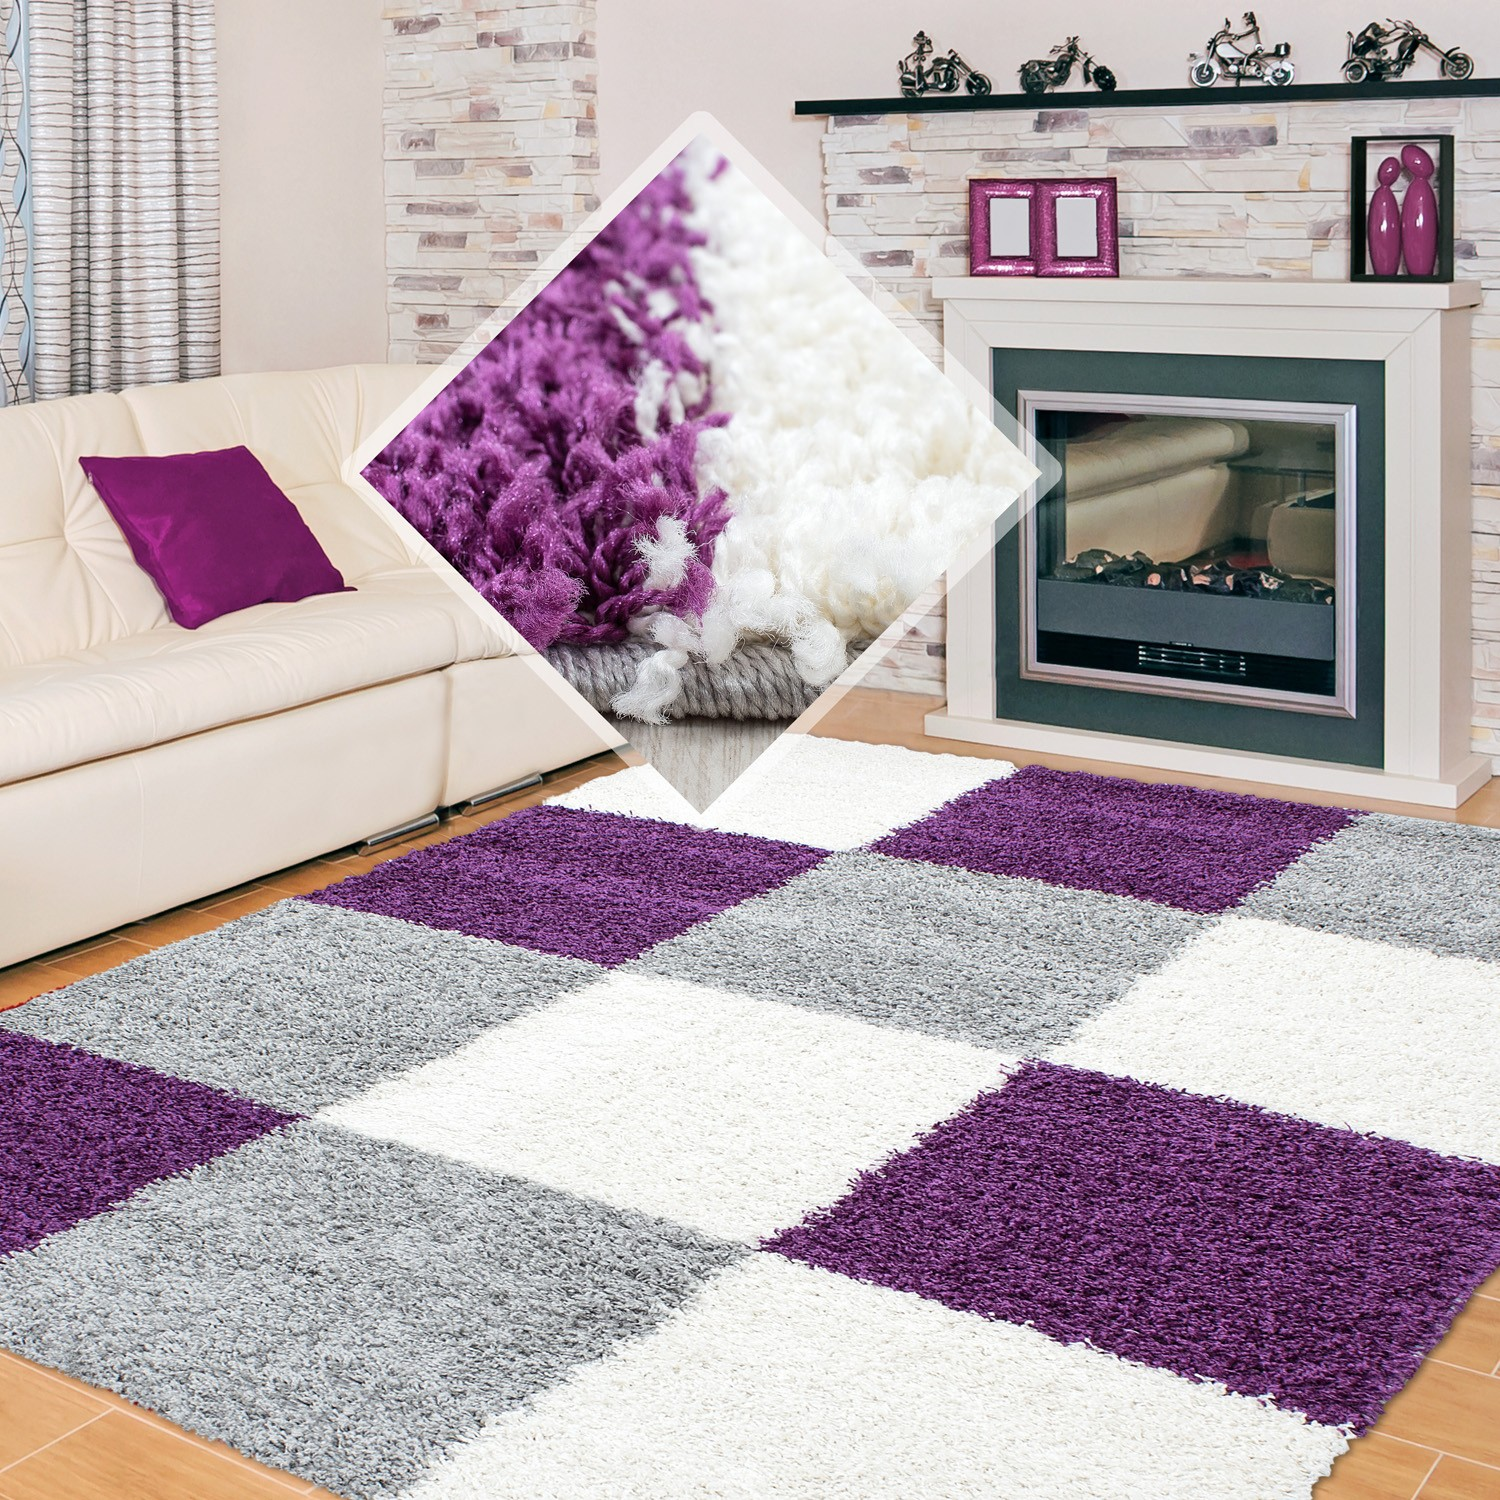 tapis shaggy longues m ches violette gris cream hautes carreaux pas cher. Black Bedroom Furniture Sets. Home Design Ideas